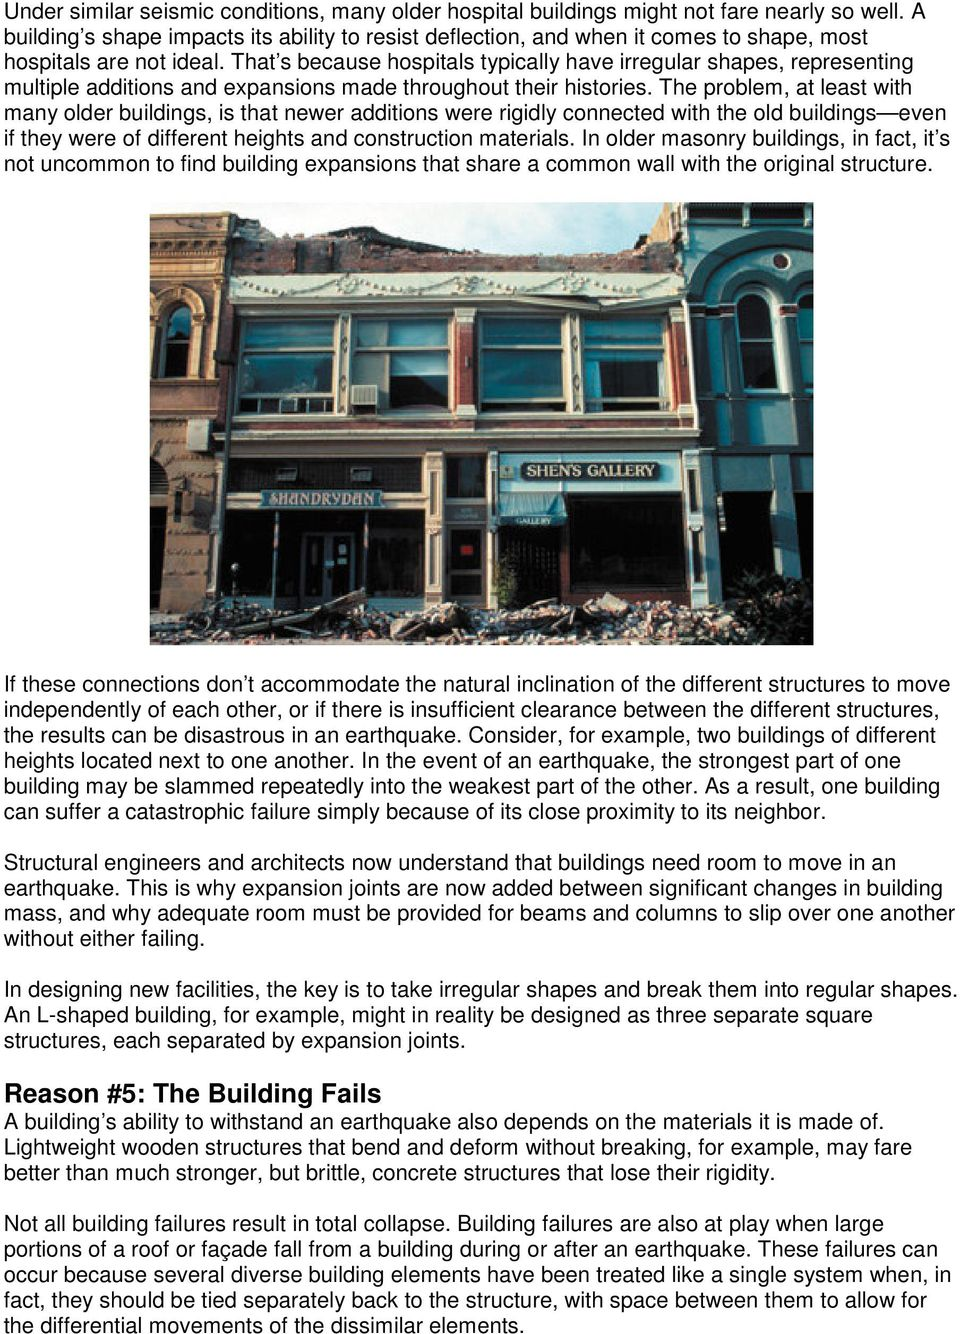 Five reasons buildings fail in an earthquake and how to